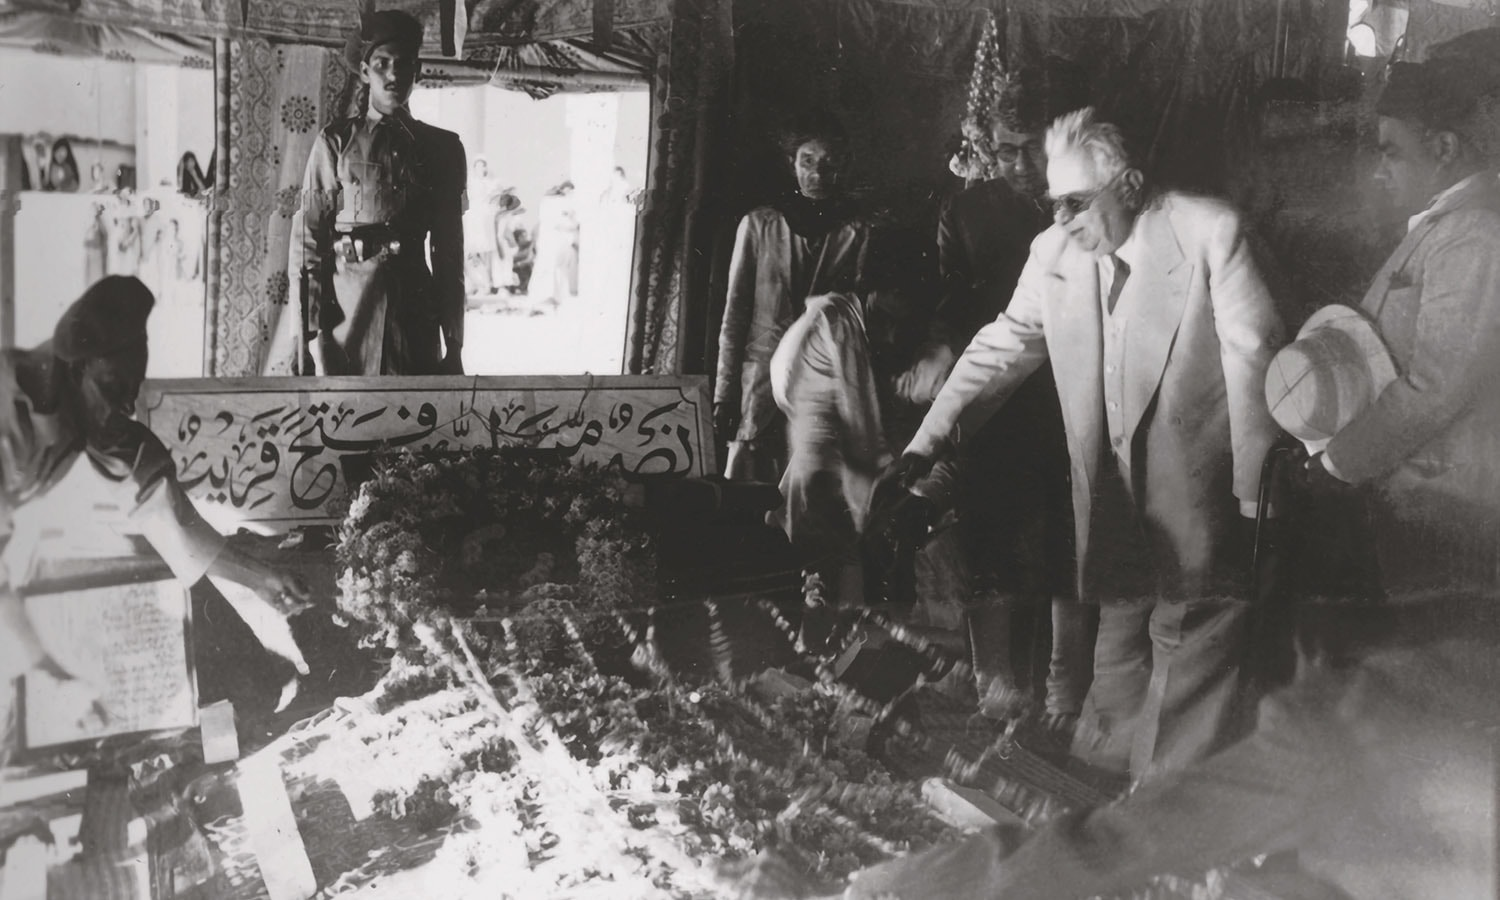 Sir Sultan Mohammed Shah Aga Khan III paying his respects to Quaid-i-Azam Mohammad Ali Jinnah a few weeks after the funeral. | Photo: The Press Information Department, Ministry of Information, Broadcasting & National Heritage, Islamabad (PID)